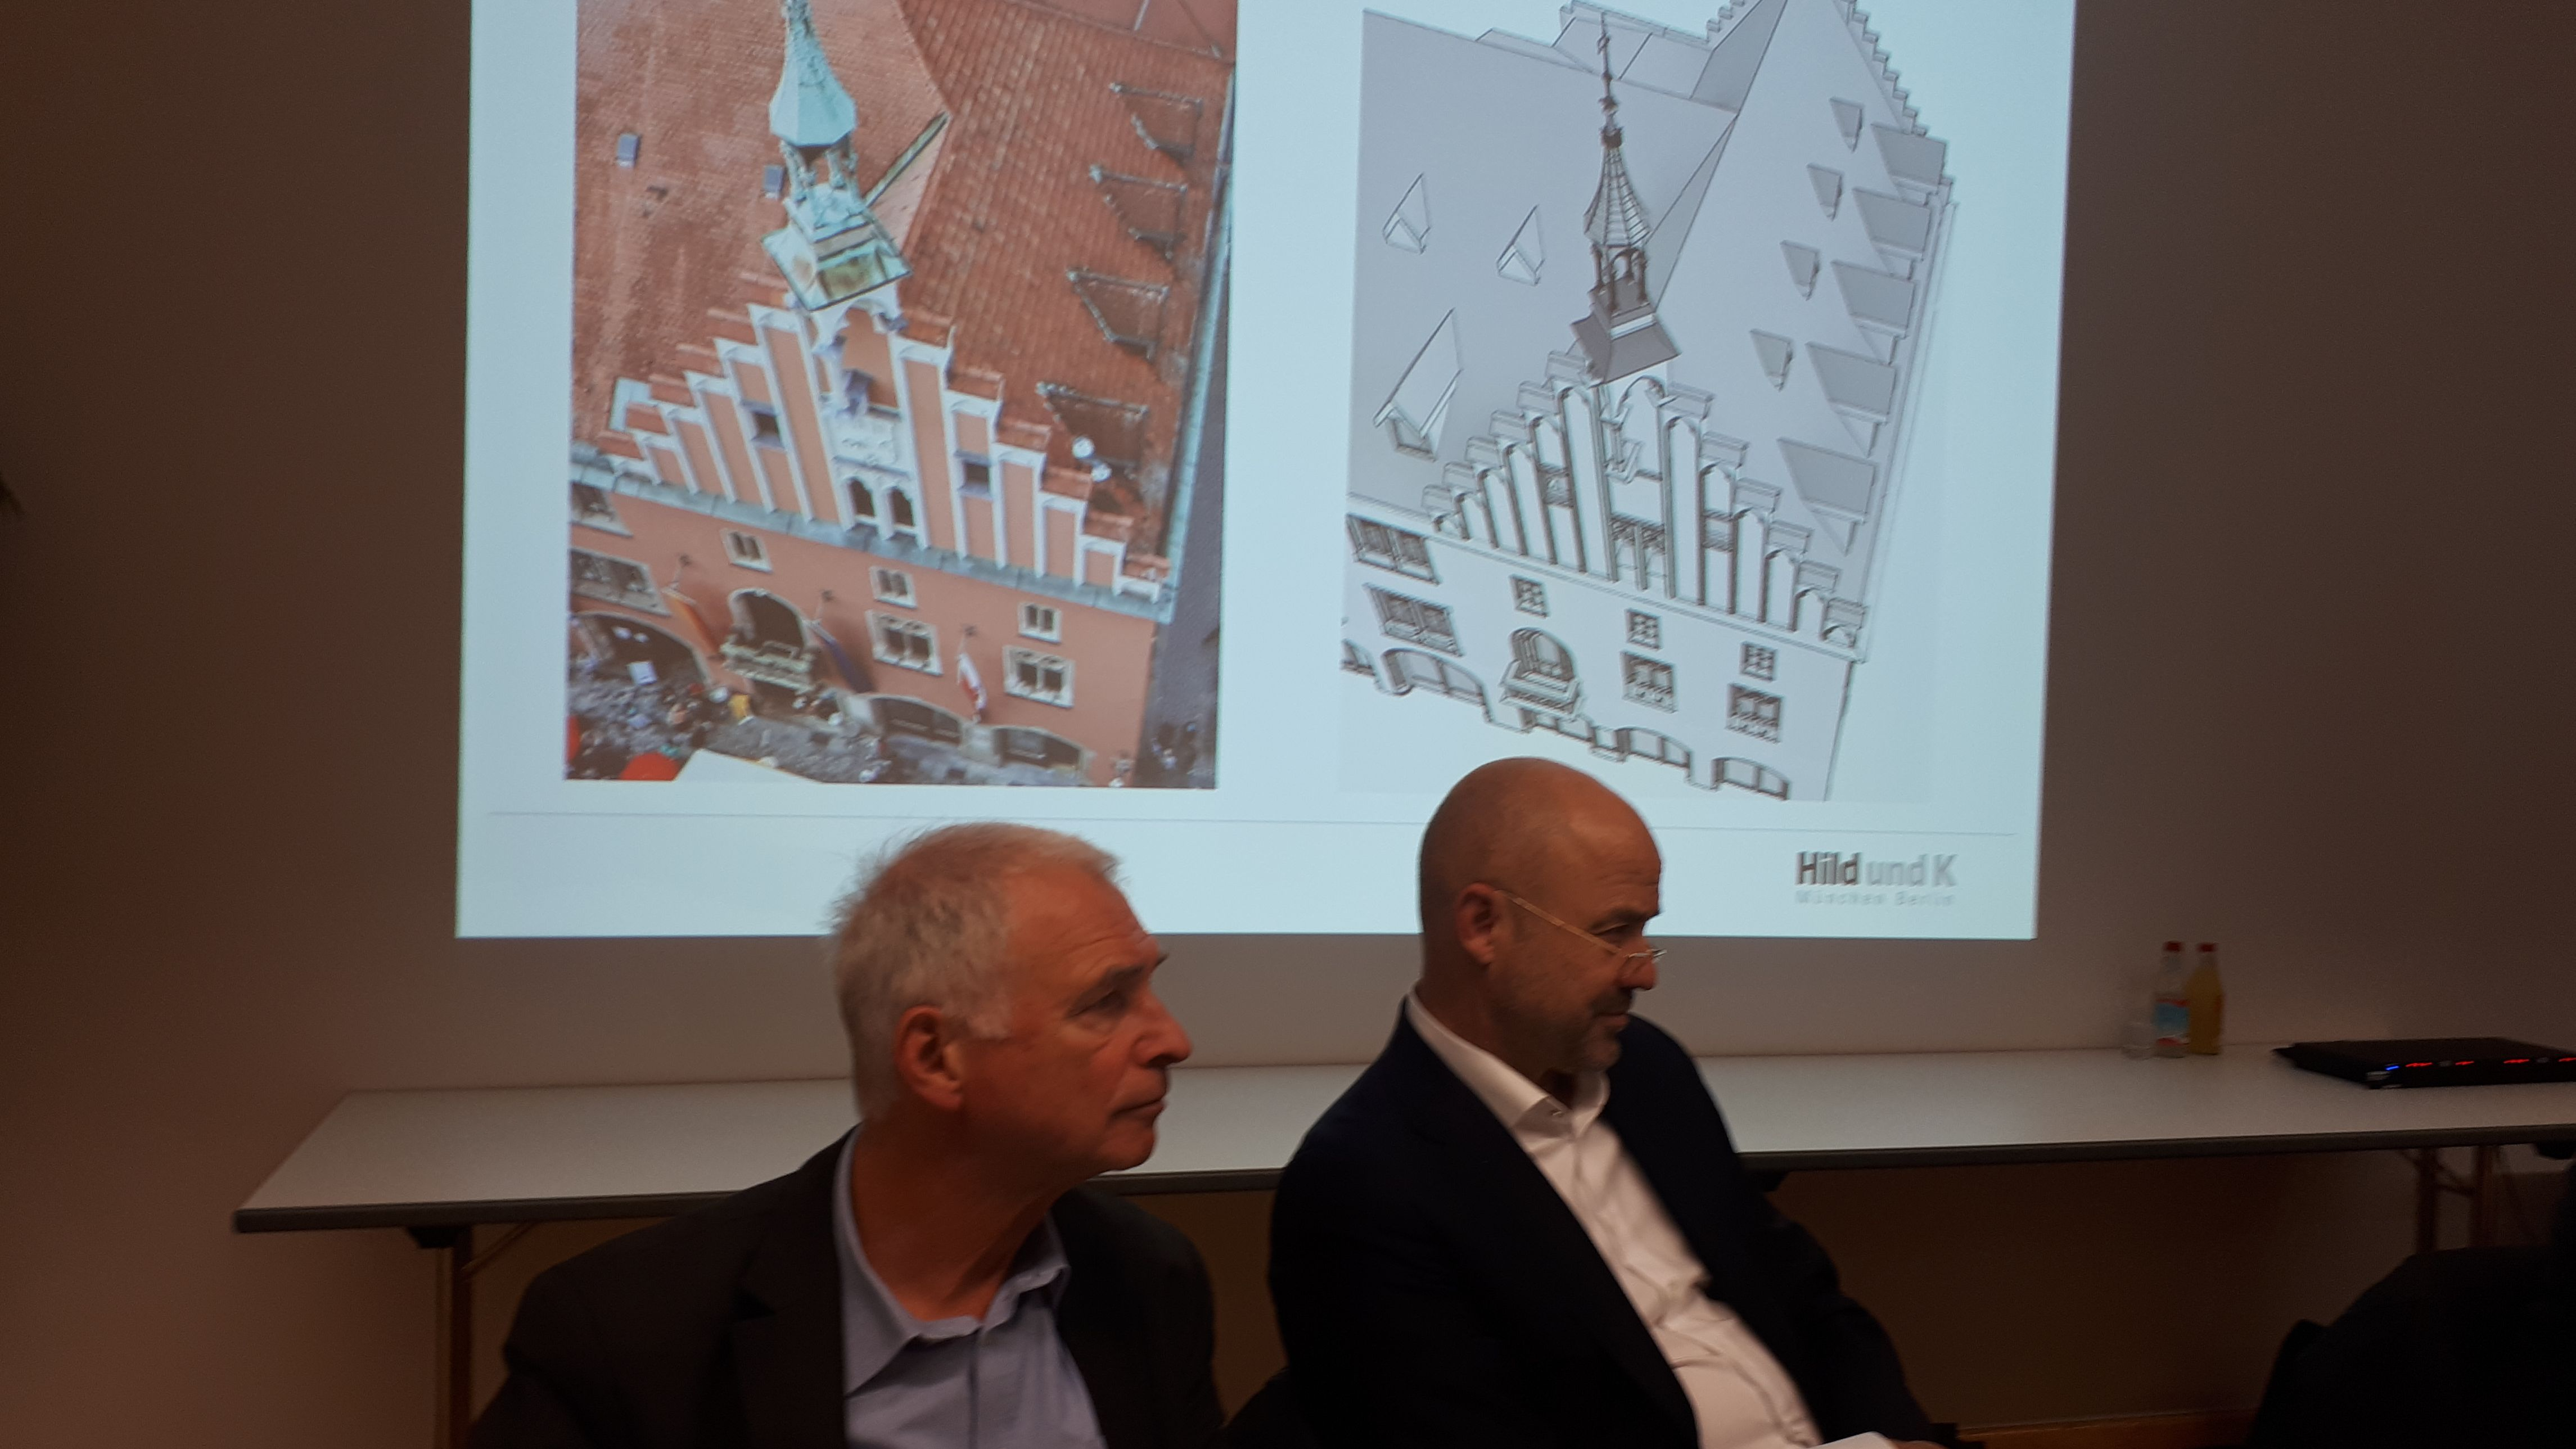 Links: Leiter Bauamt Wolfgang Bach, rechts: Architekt Prof. Andreas Hild